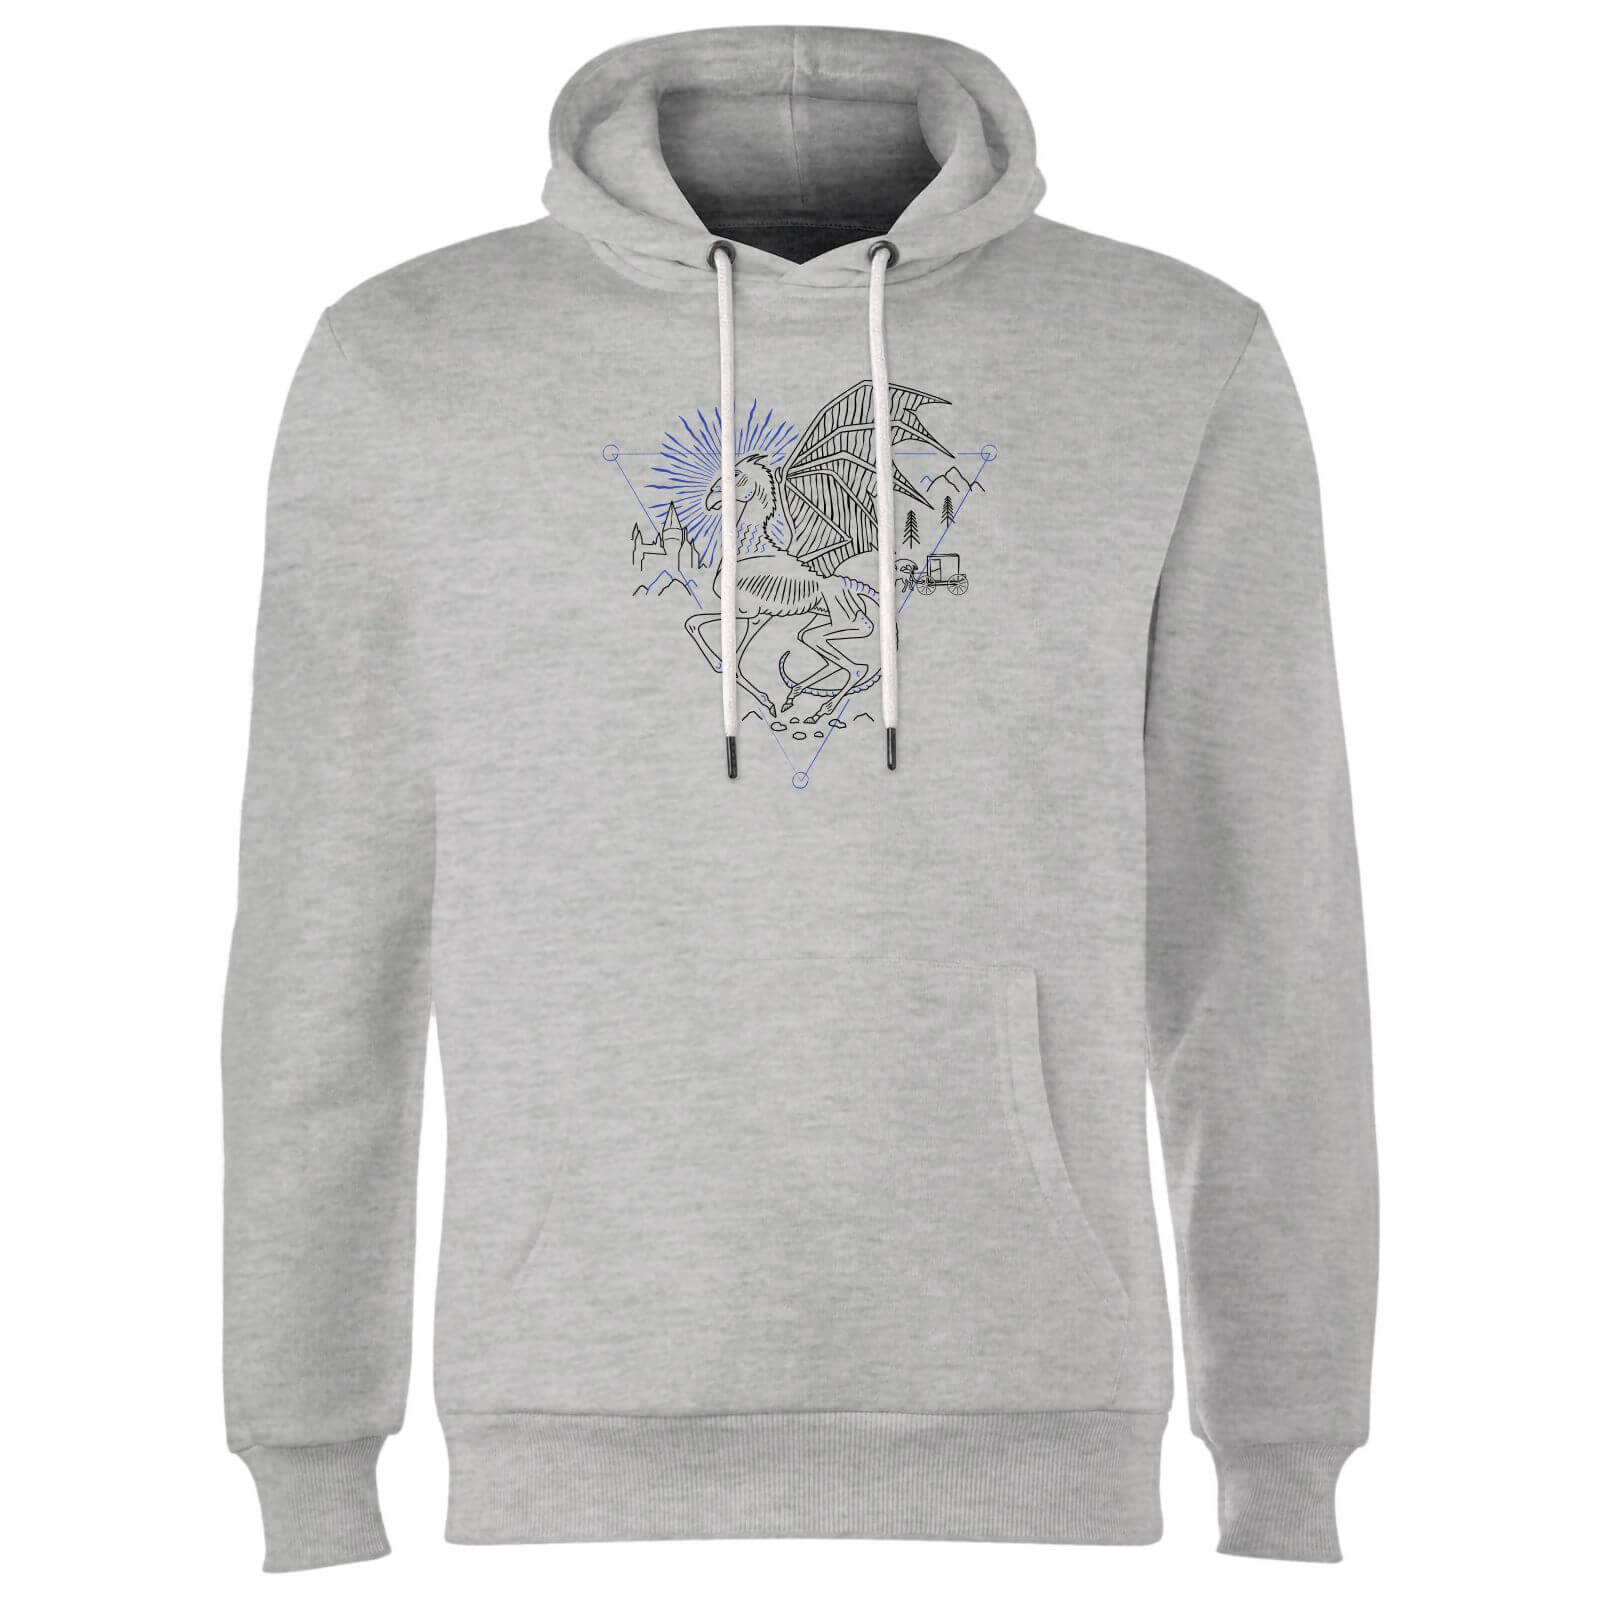 Harry Potter Thestral Line Art Hoodie - Grey